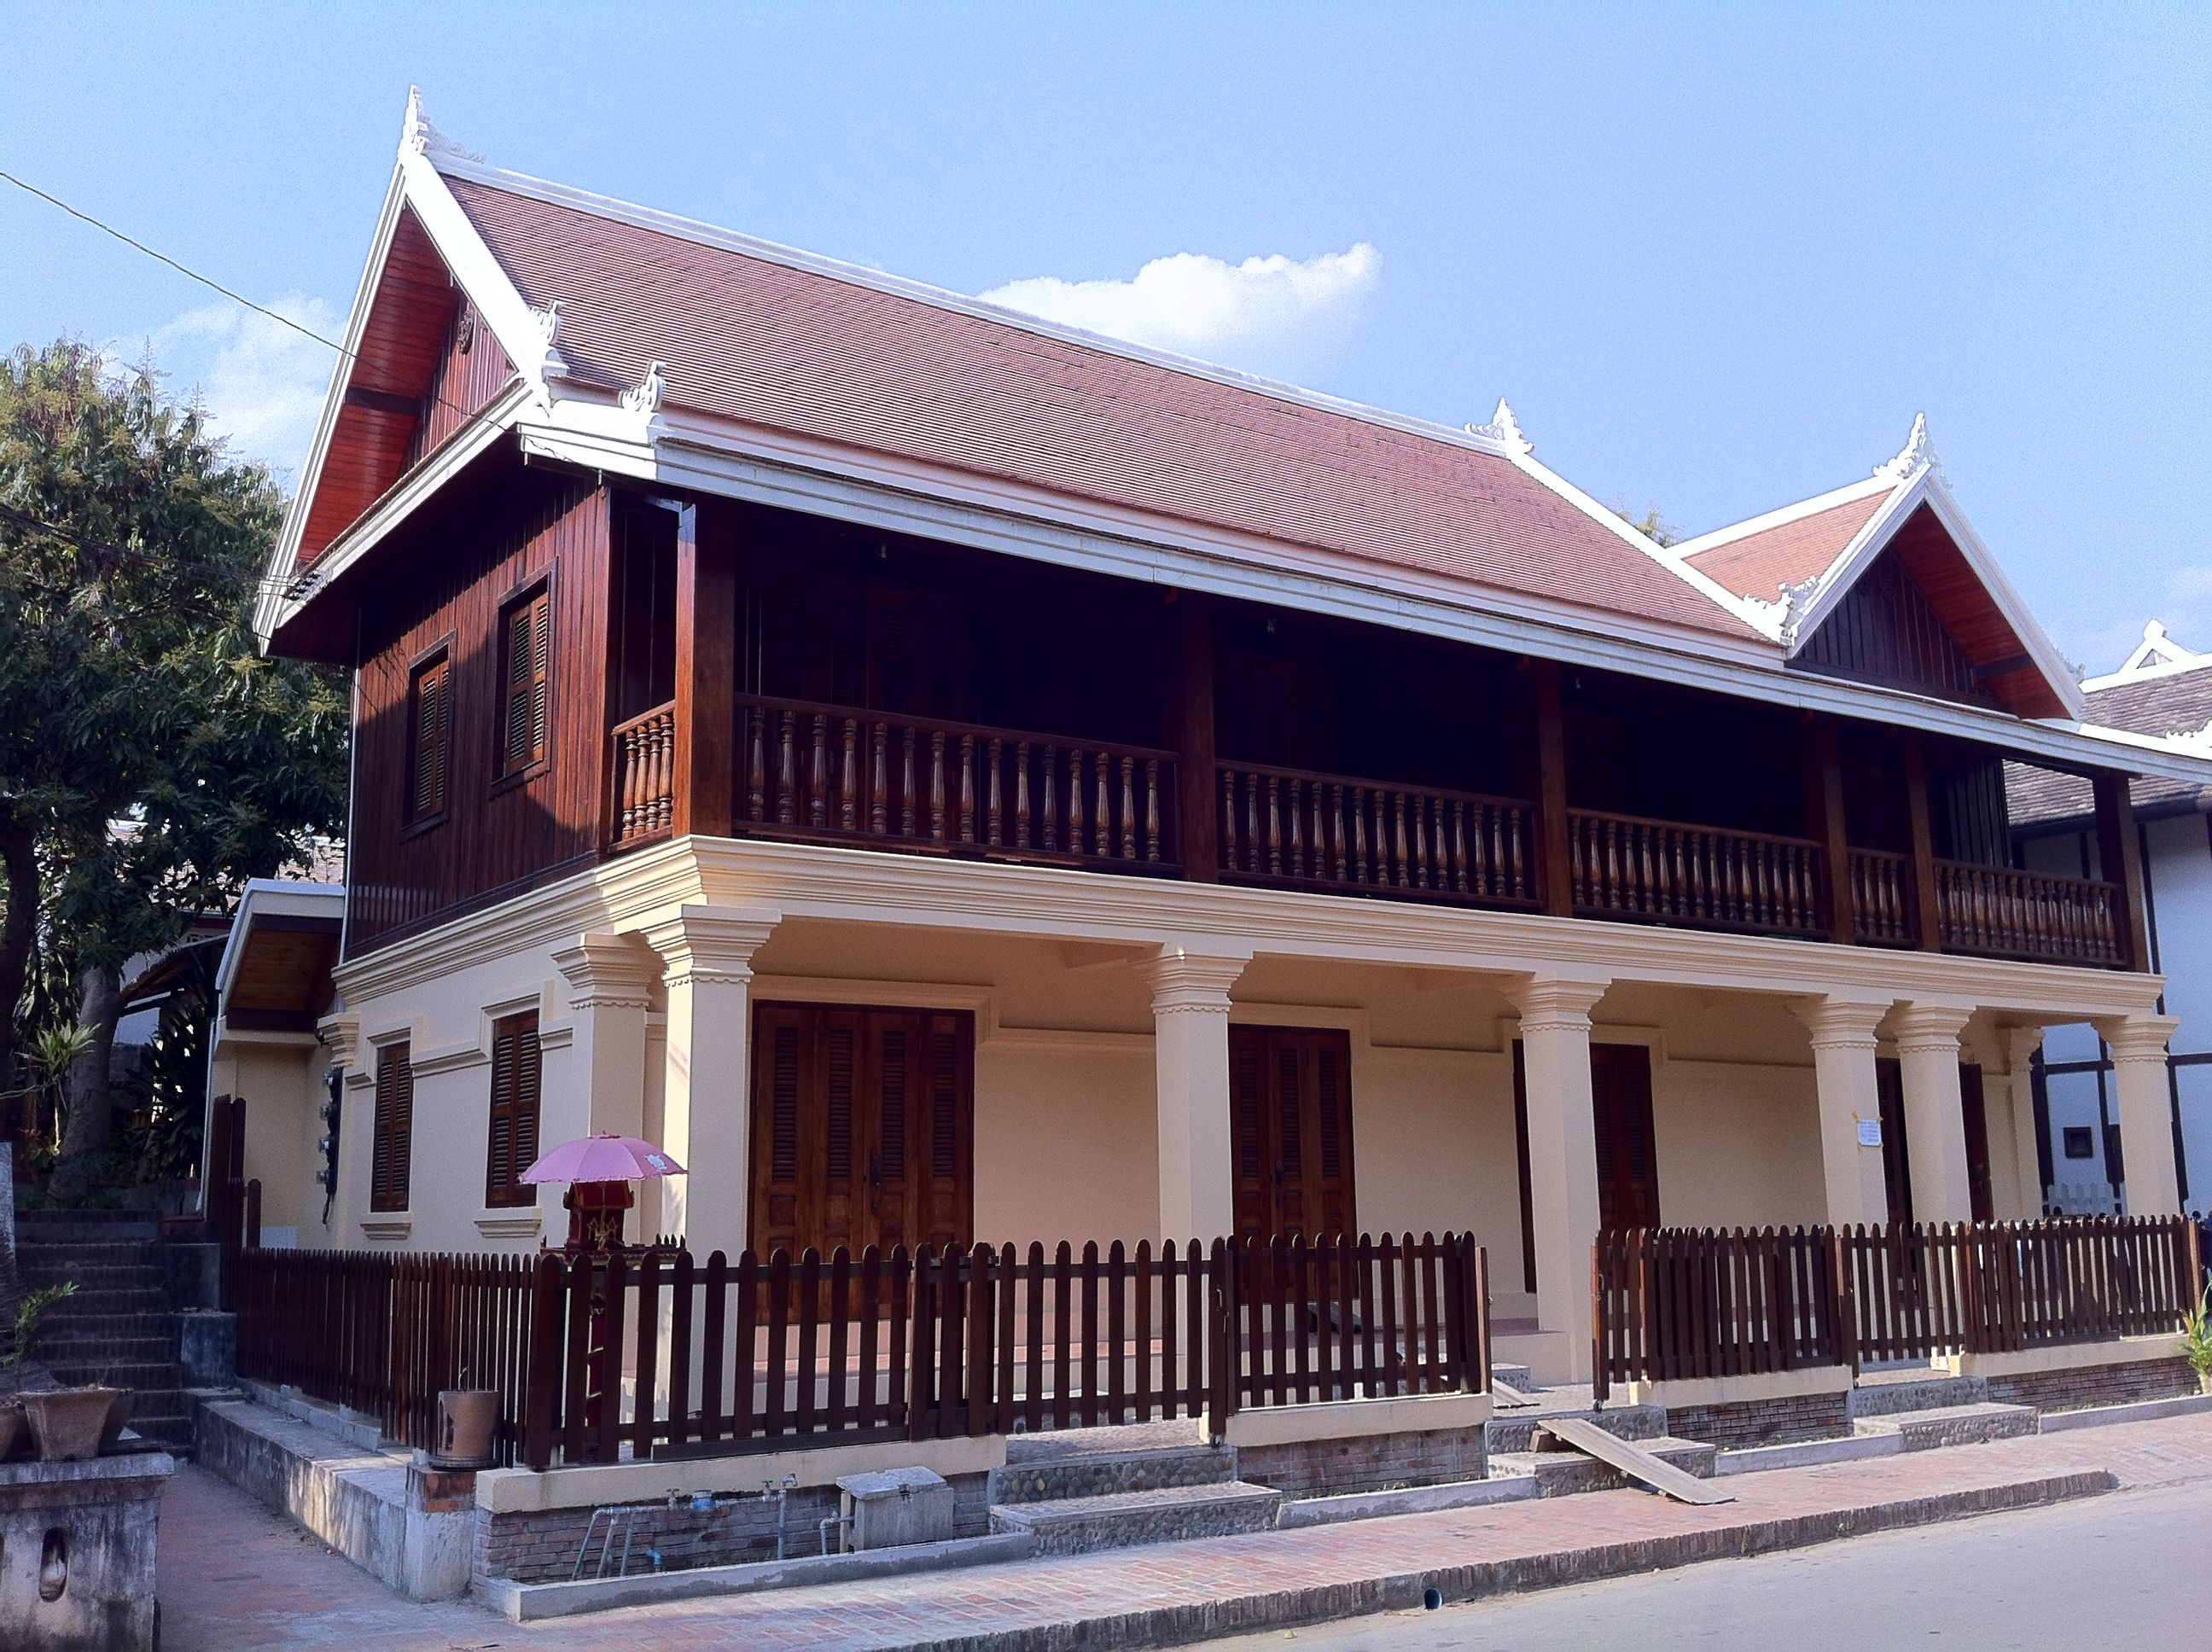 Modern Luang Prabang, Laos Architecture In The French Colonial Style